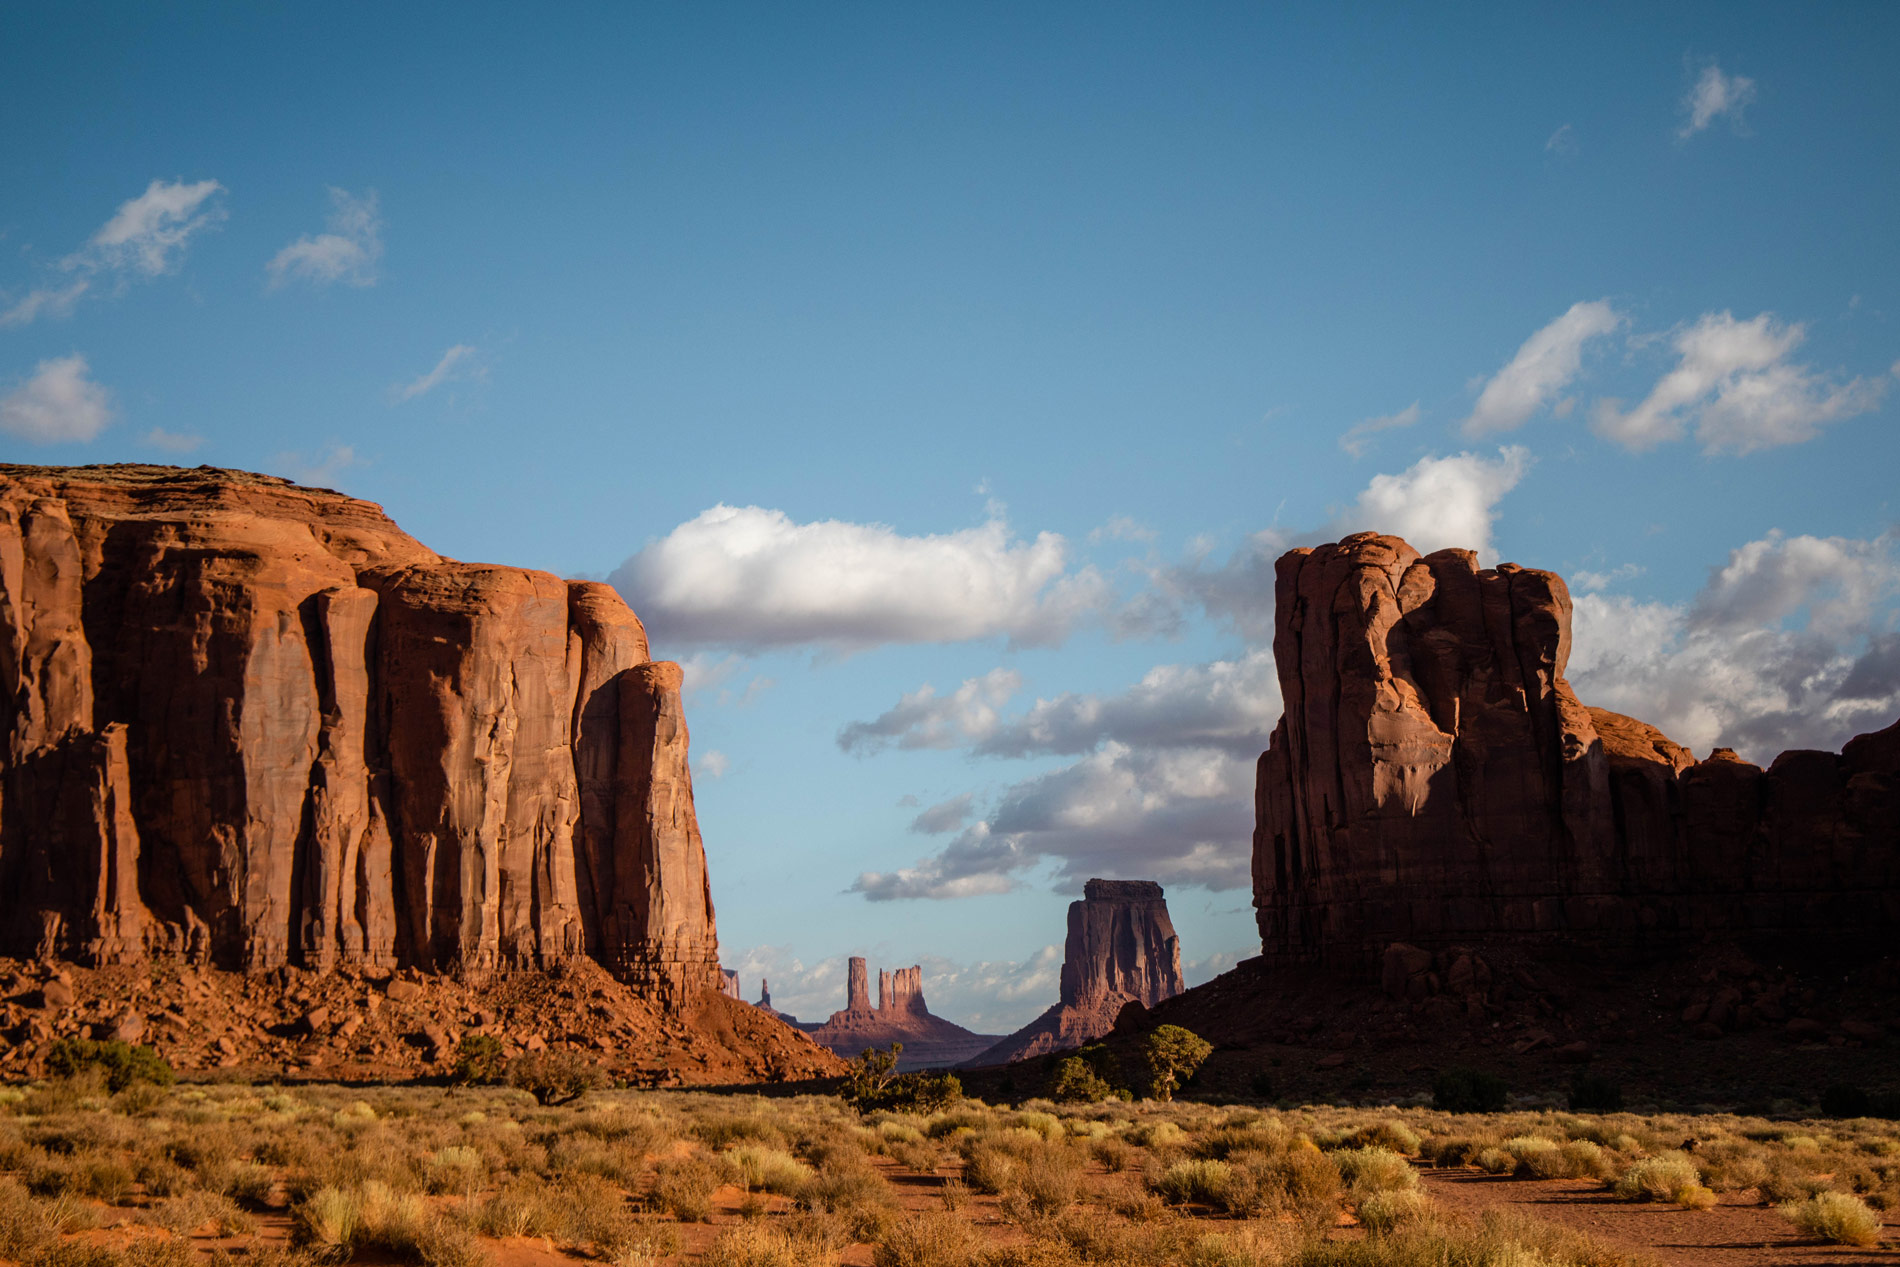 north-window-visiter-monument-valley-blog-usa